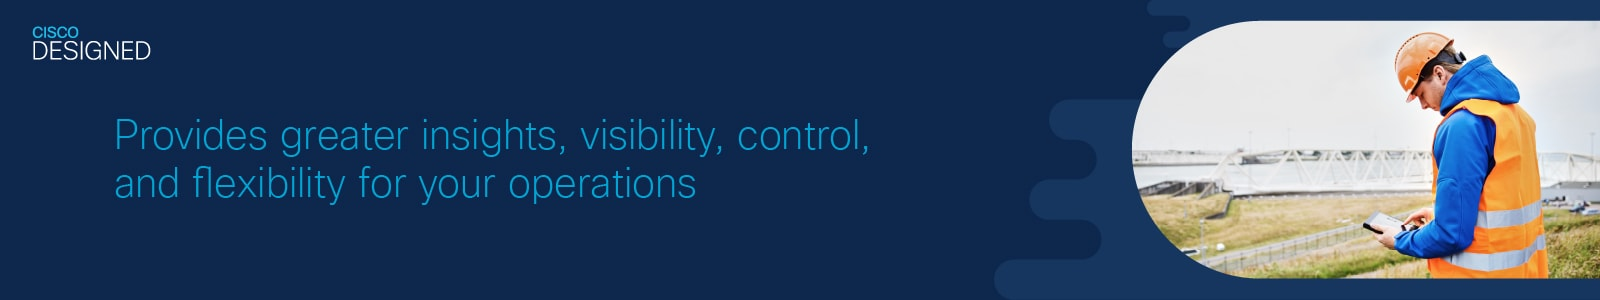 Provides greater insights, visibility, control, and flexibility for your operations